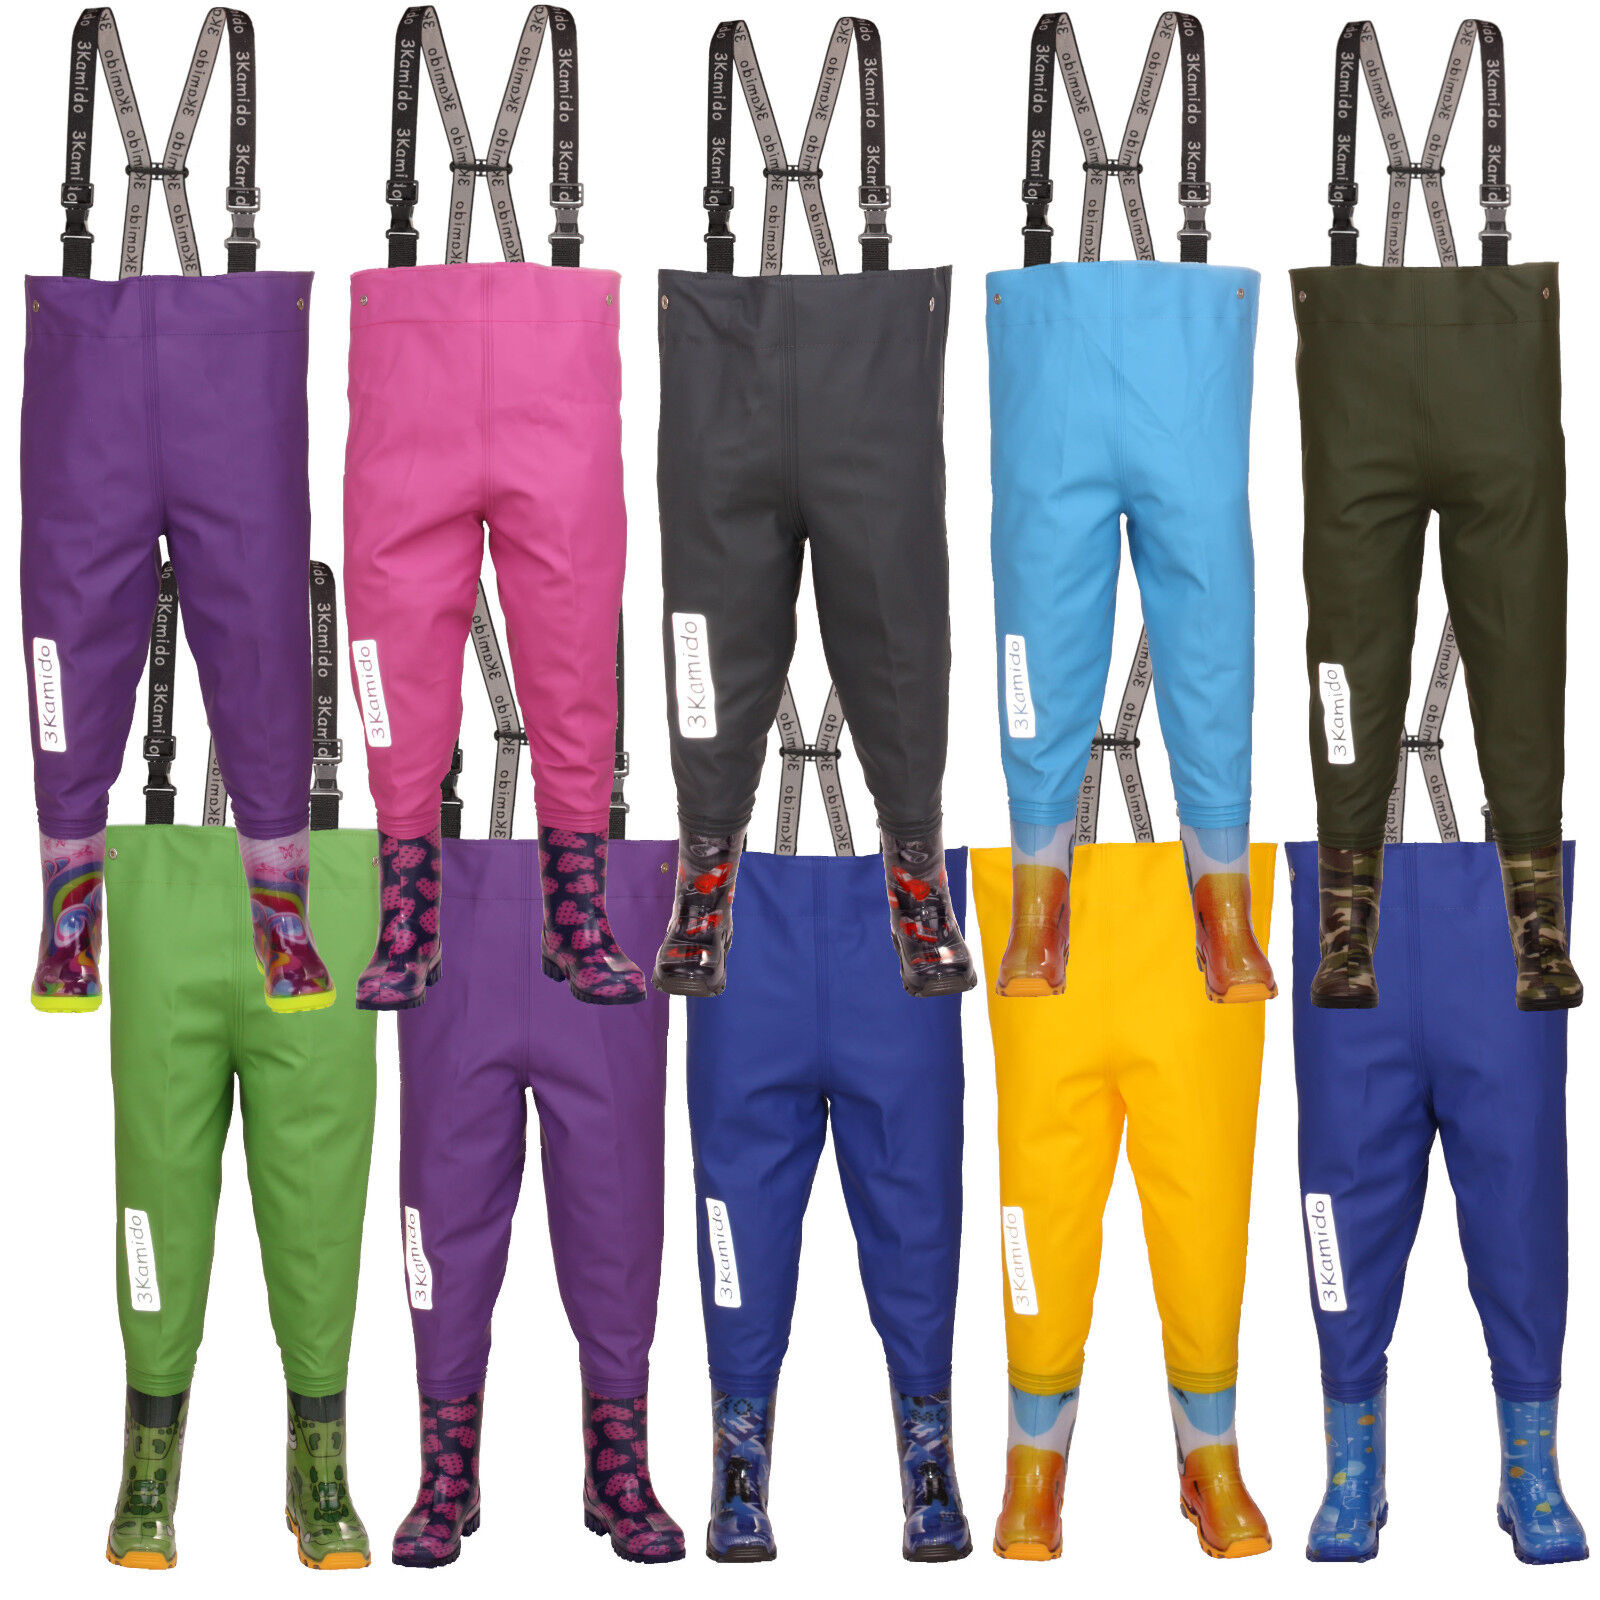 Kids chest waders 3KAMIDO PRO ,10 models, Fishing boots  , durable suspenders  healthy